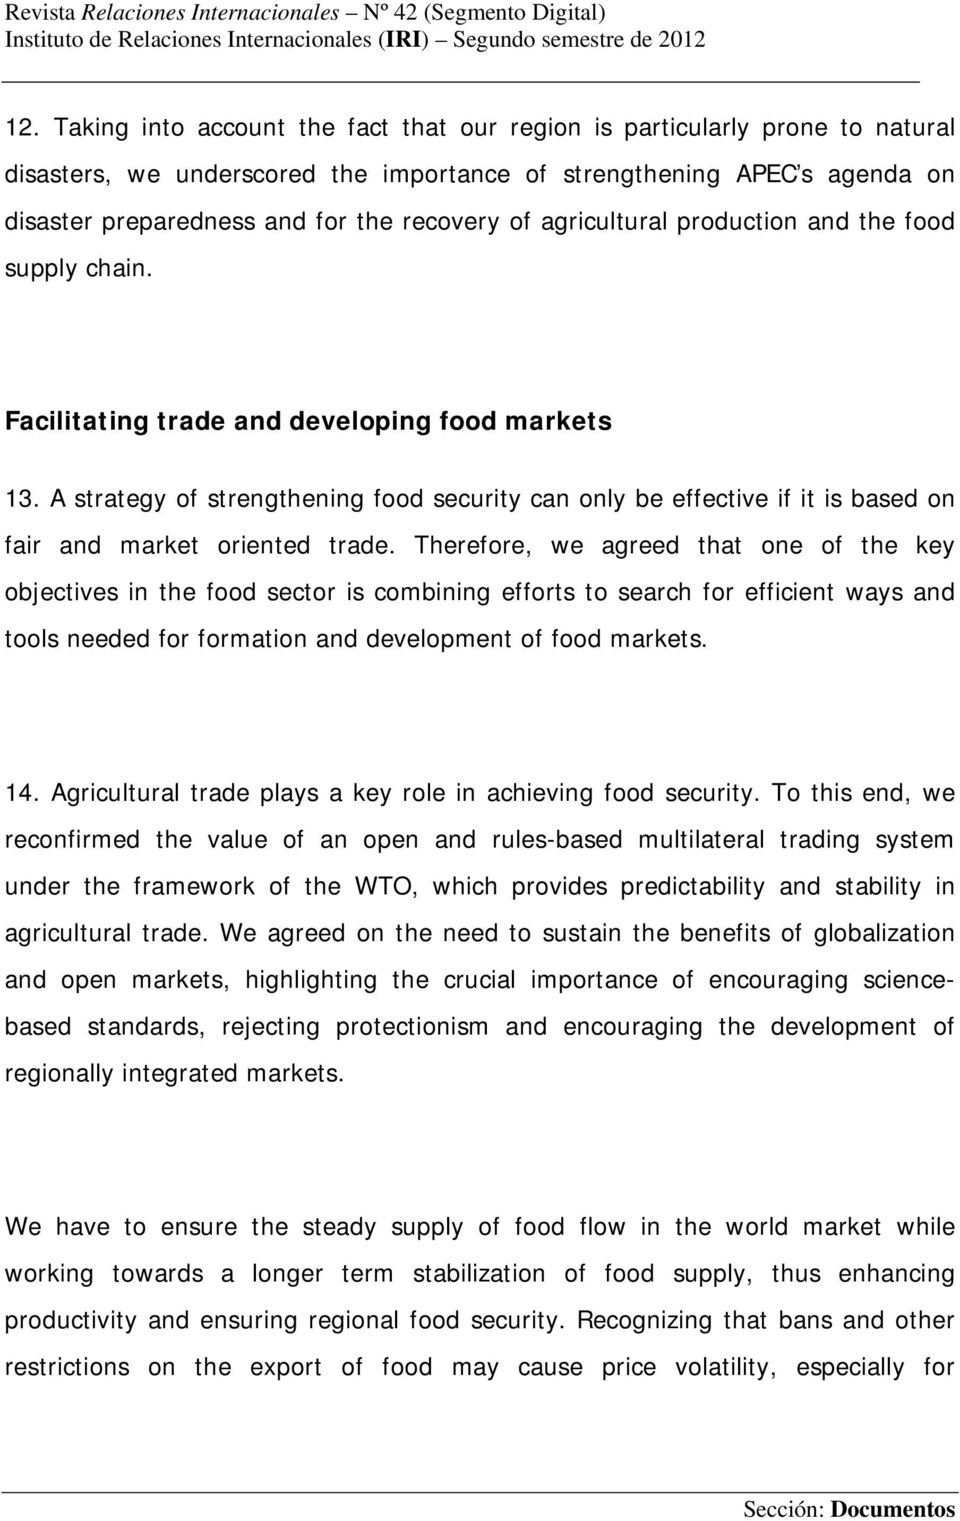 A strategy of strengthening food security can only be effective if it is based on fair and market oriented trade.